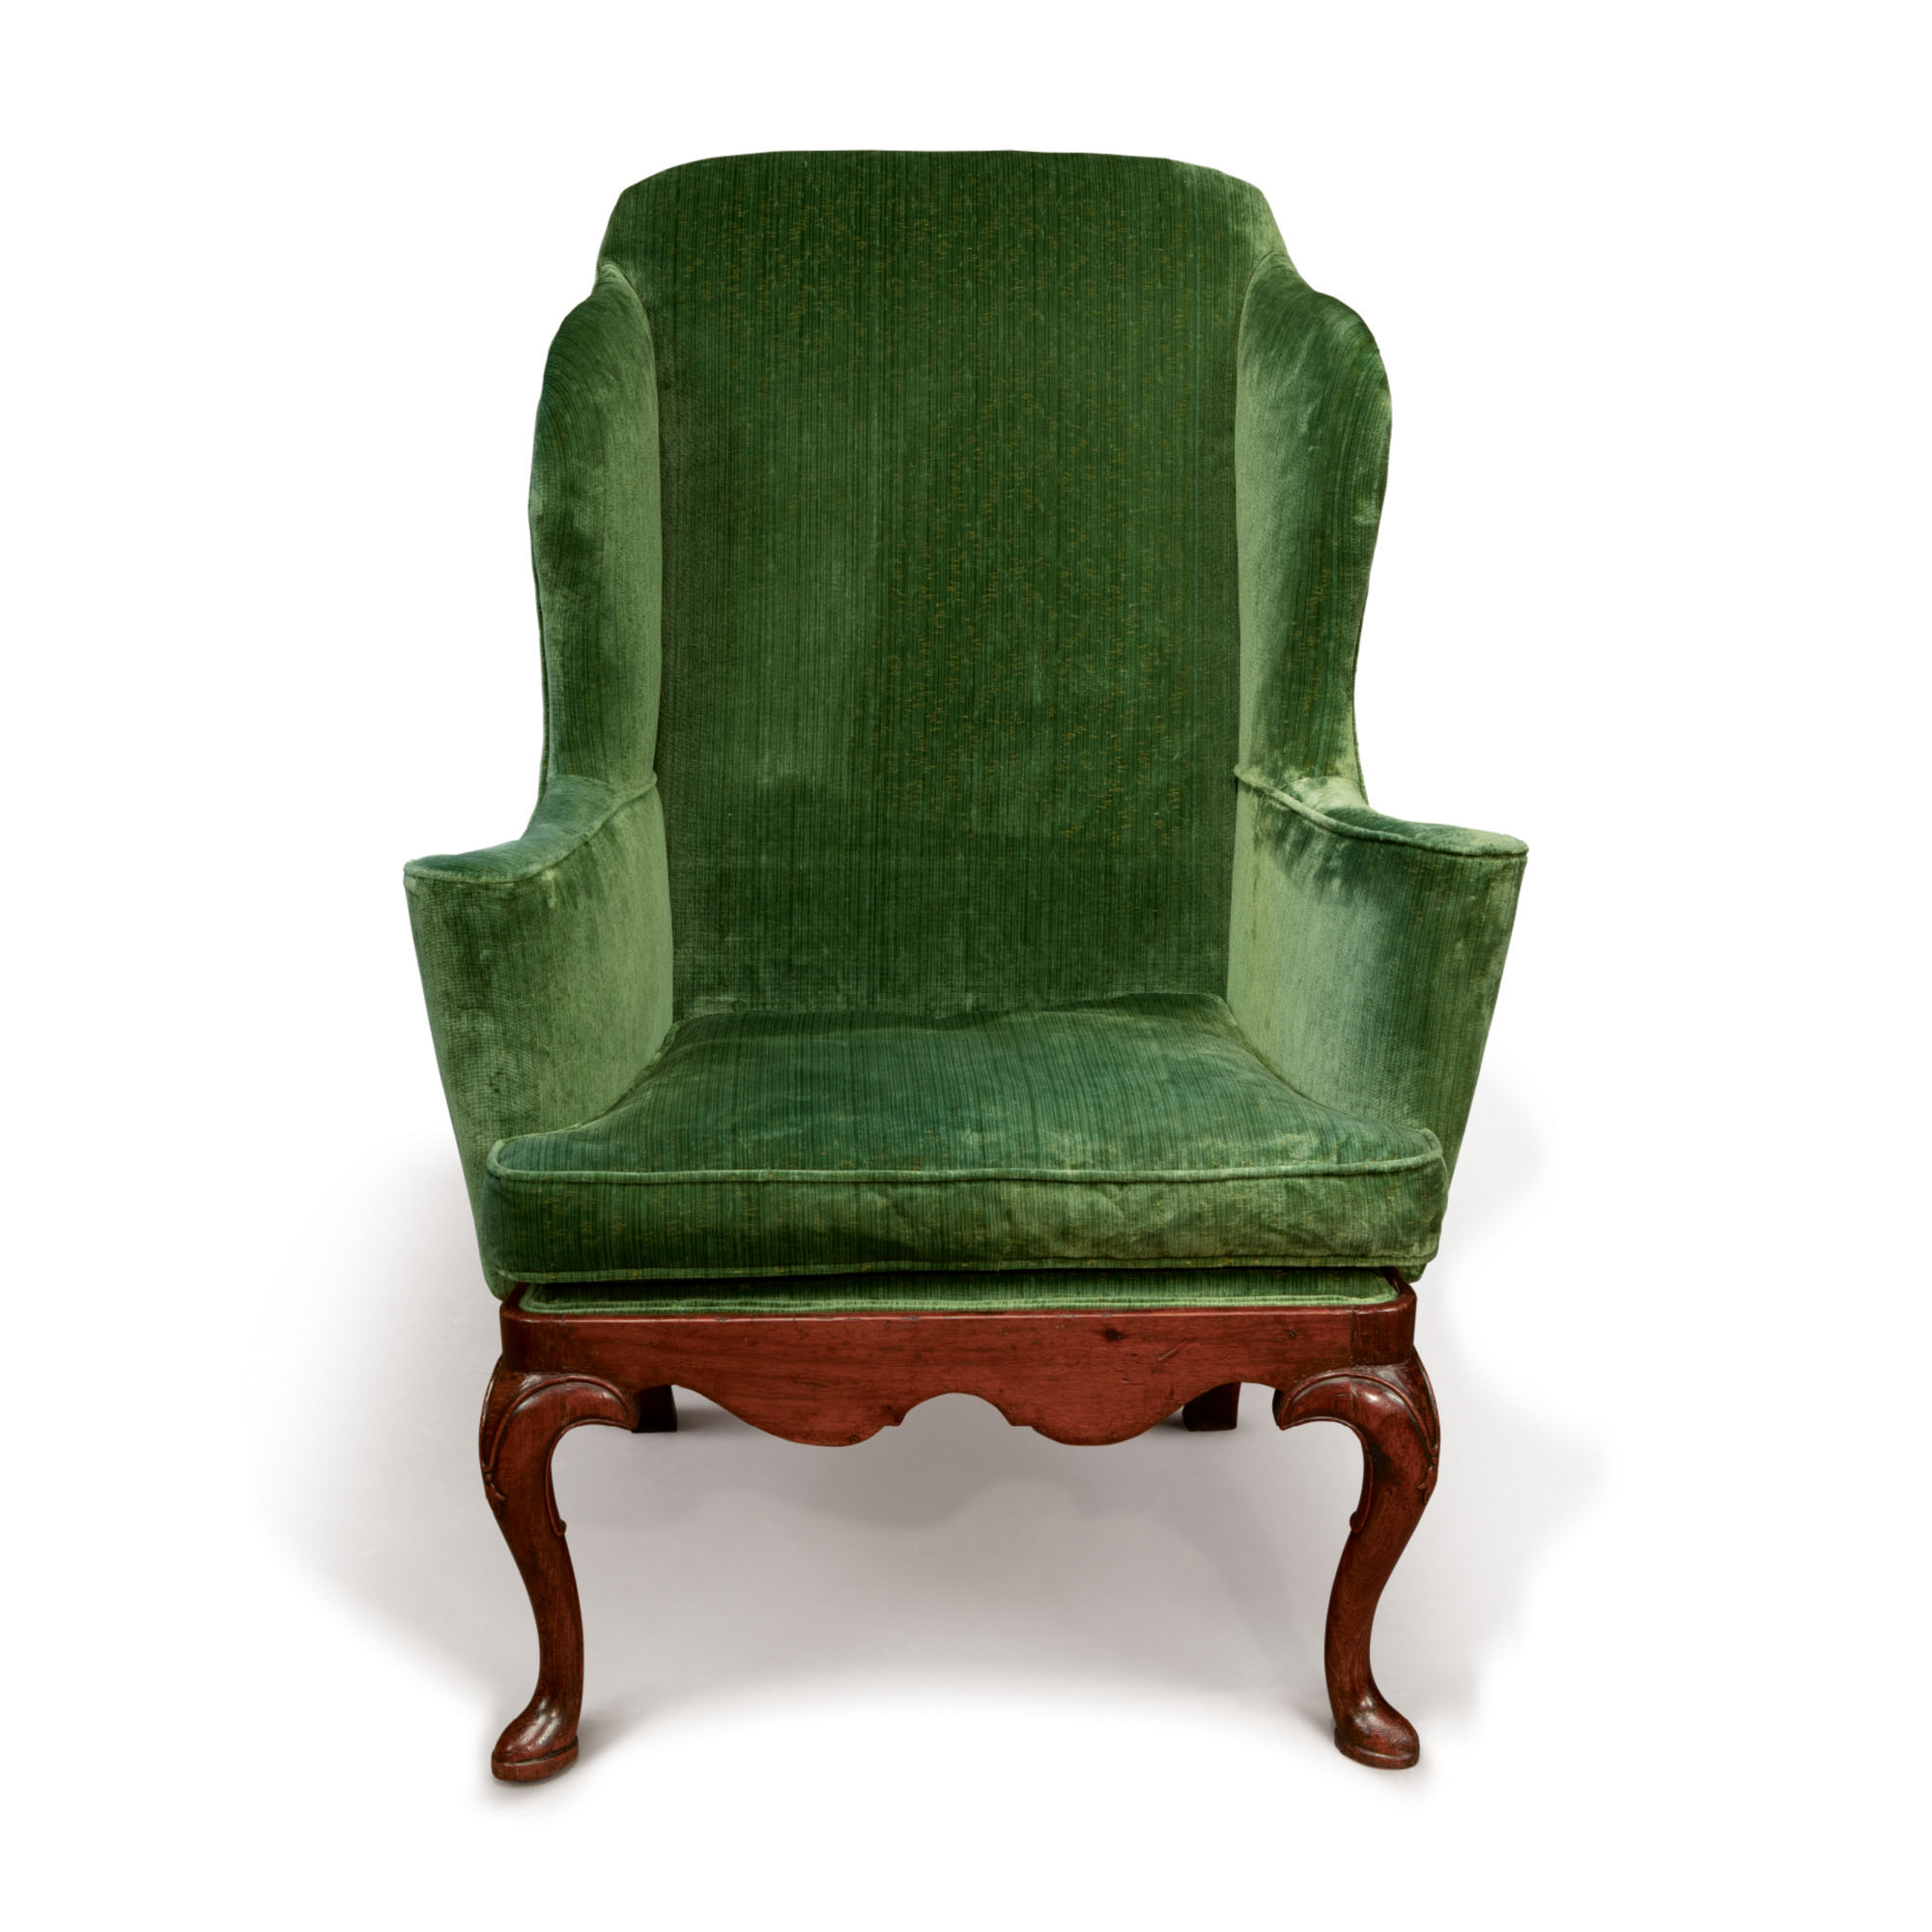 Super A Queen Anne Walnut Wing Armchair Circa 1715 Style Gmtry Best Dining Table And Chair Ideas Images Gmtryco